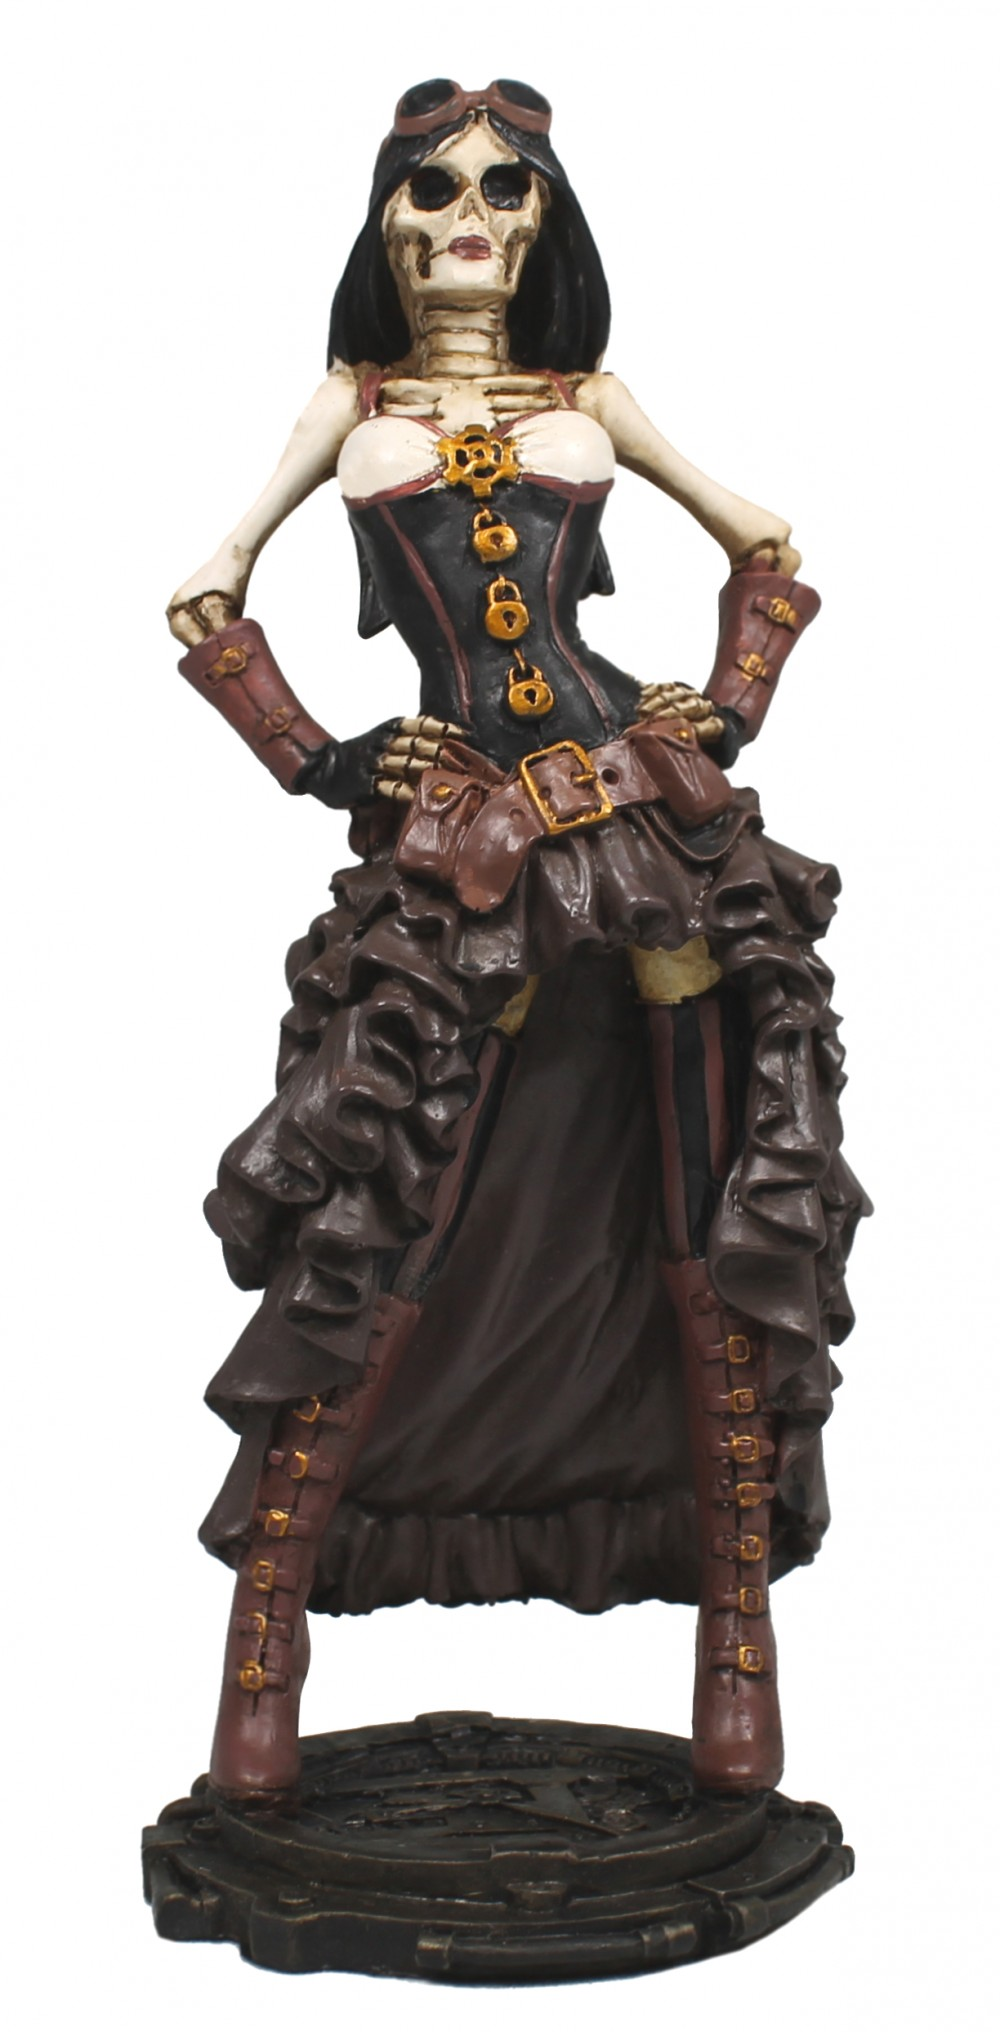 Dekofigur Steampunk Skelett Lady Science-Fiction Deko Dekoration